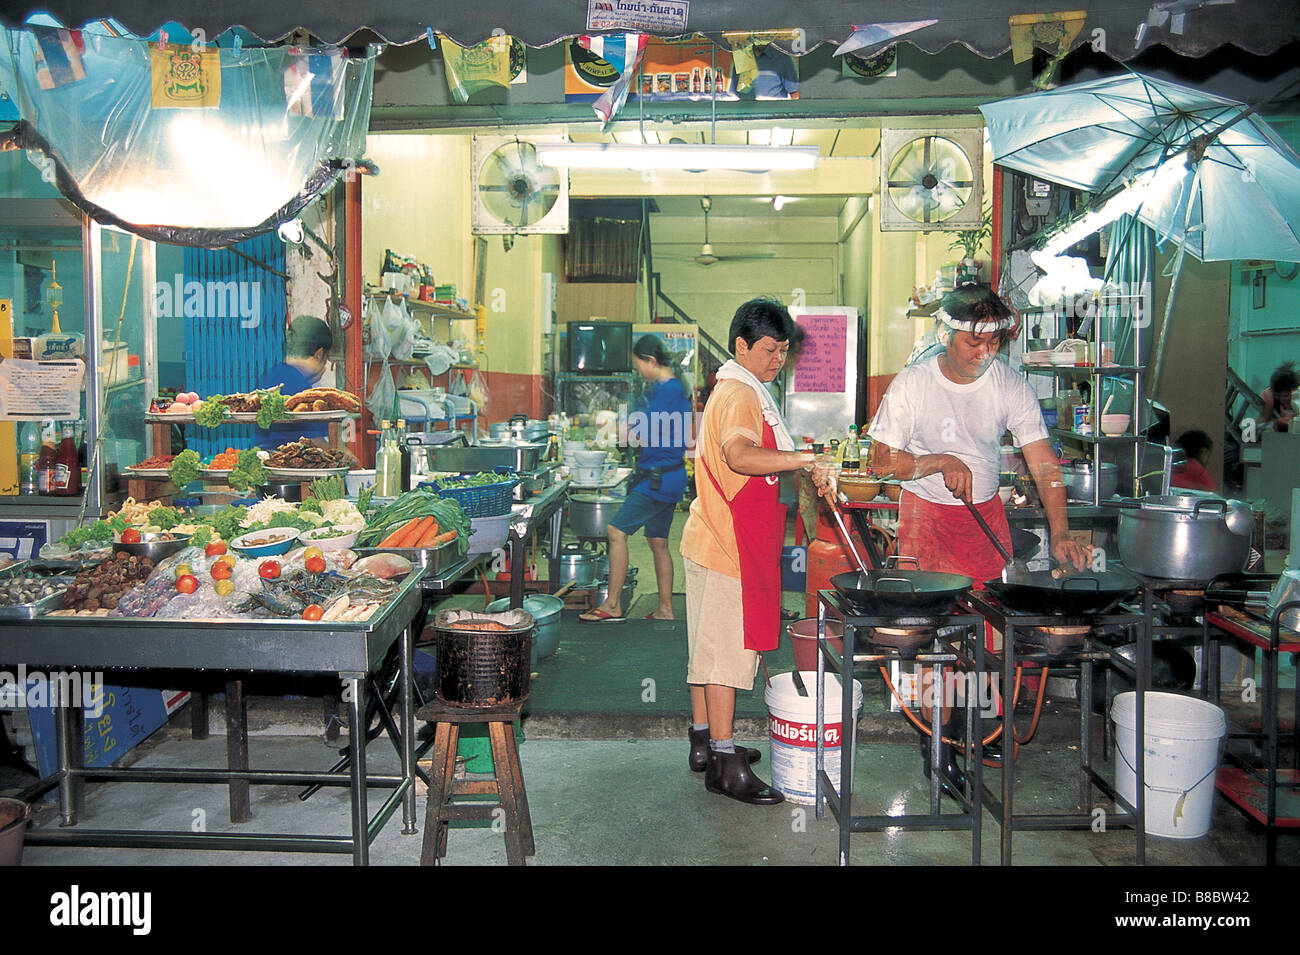 Busy Kitchen a busy kitchen run from a garage at an open air thai restaurant in